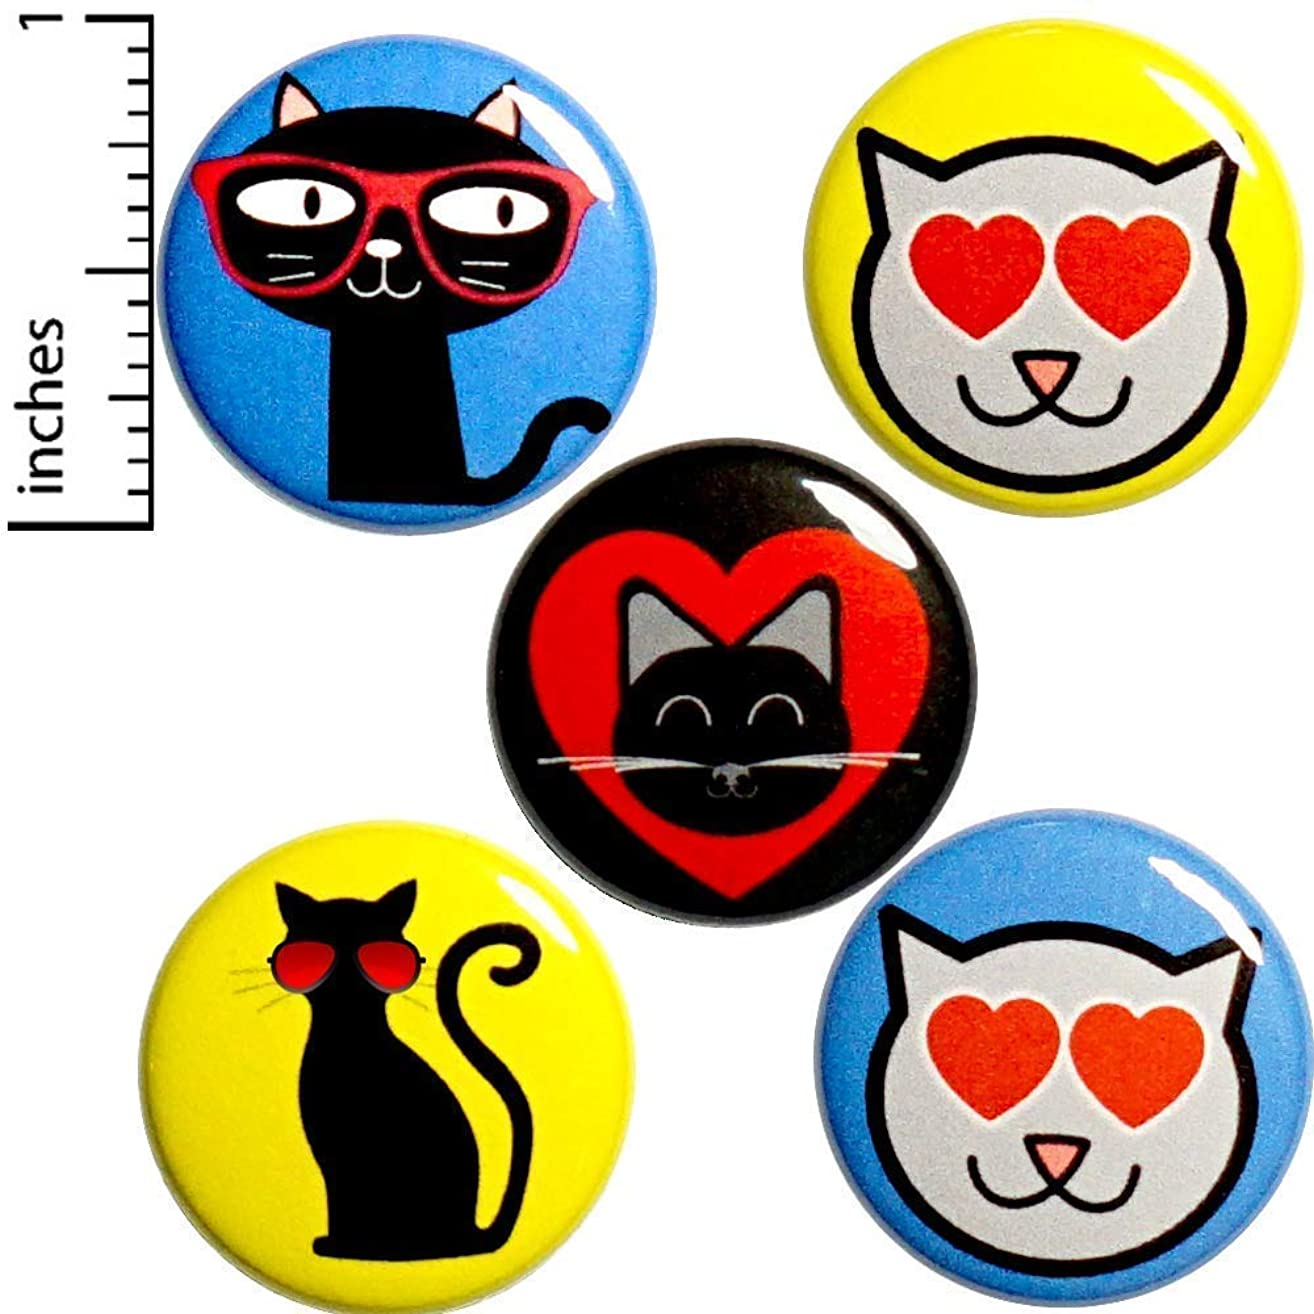 Cute Cat Buttons 5 Pack Pin or Magnet 1 Inch P21-3